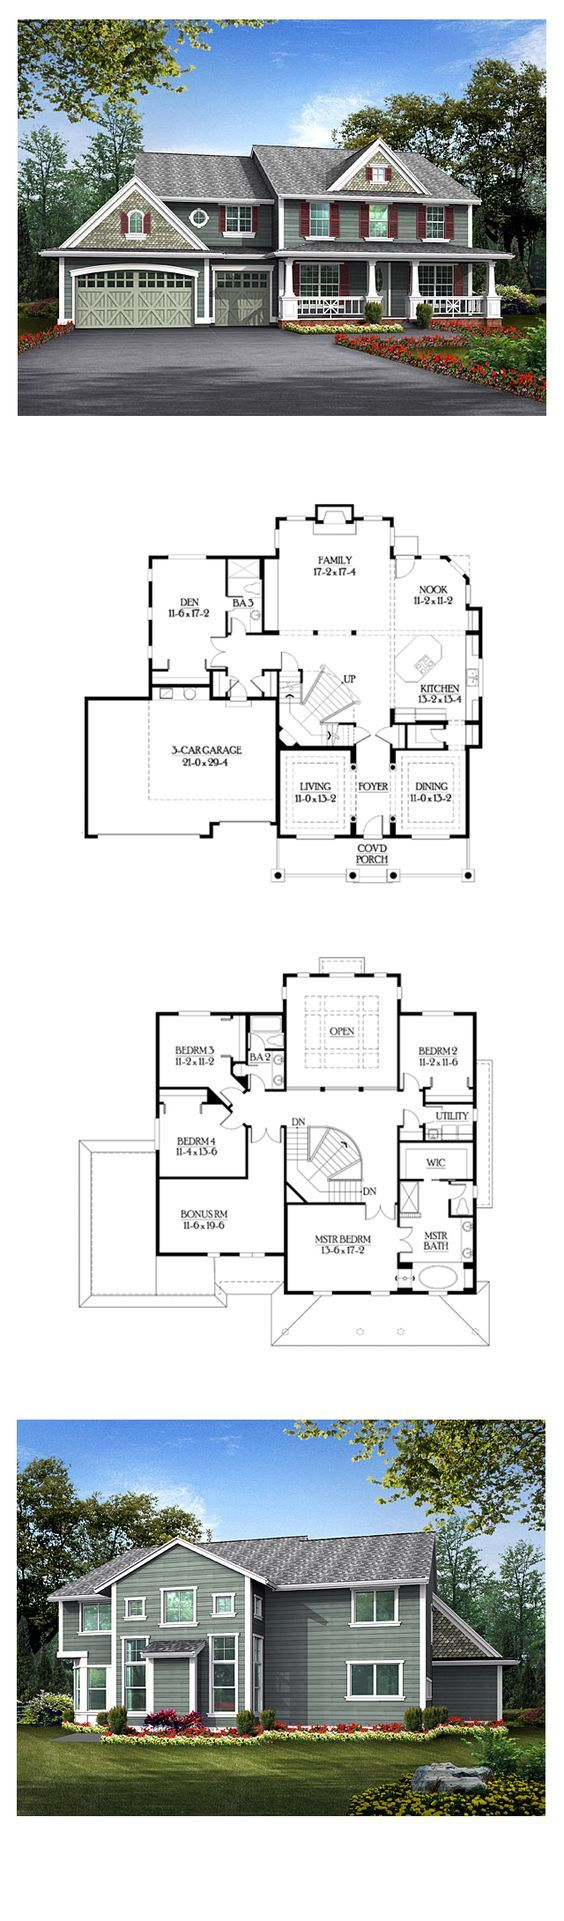 Country House Plan 87651 638 best Home